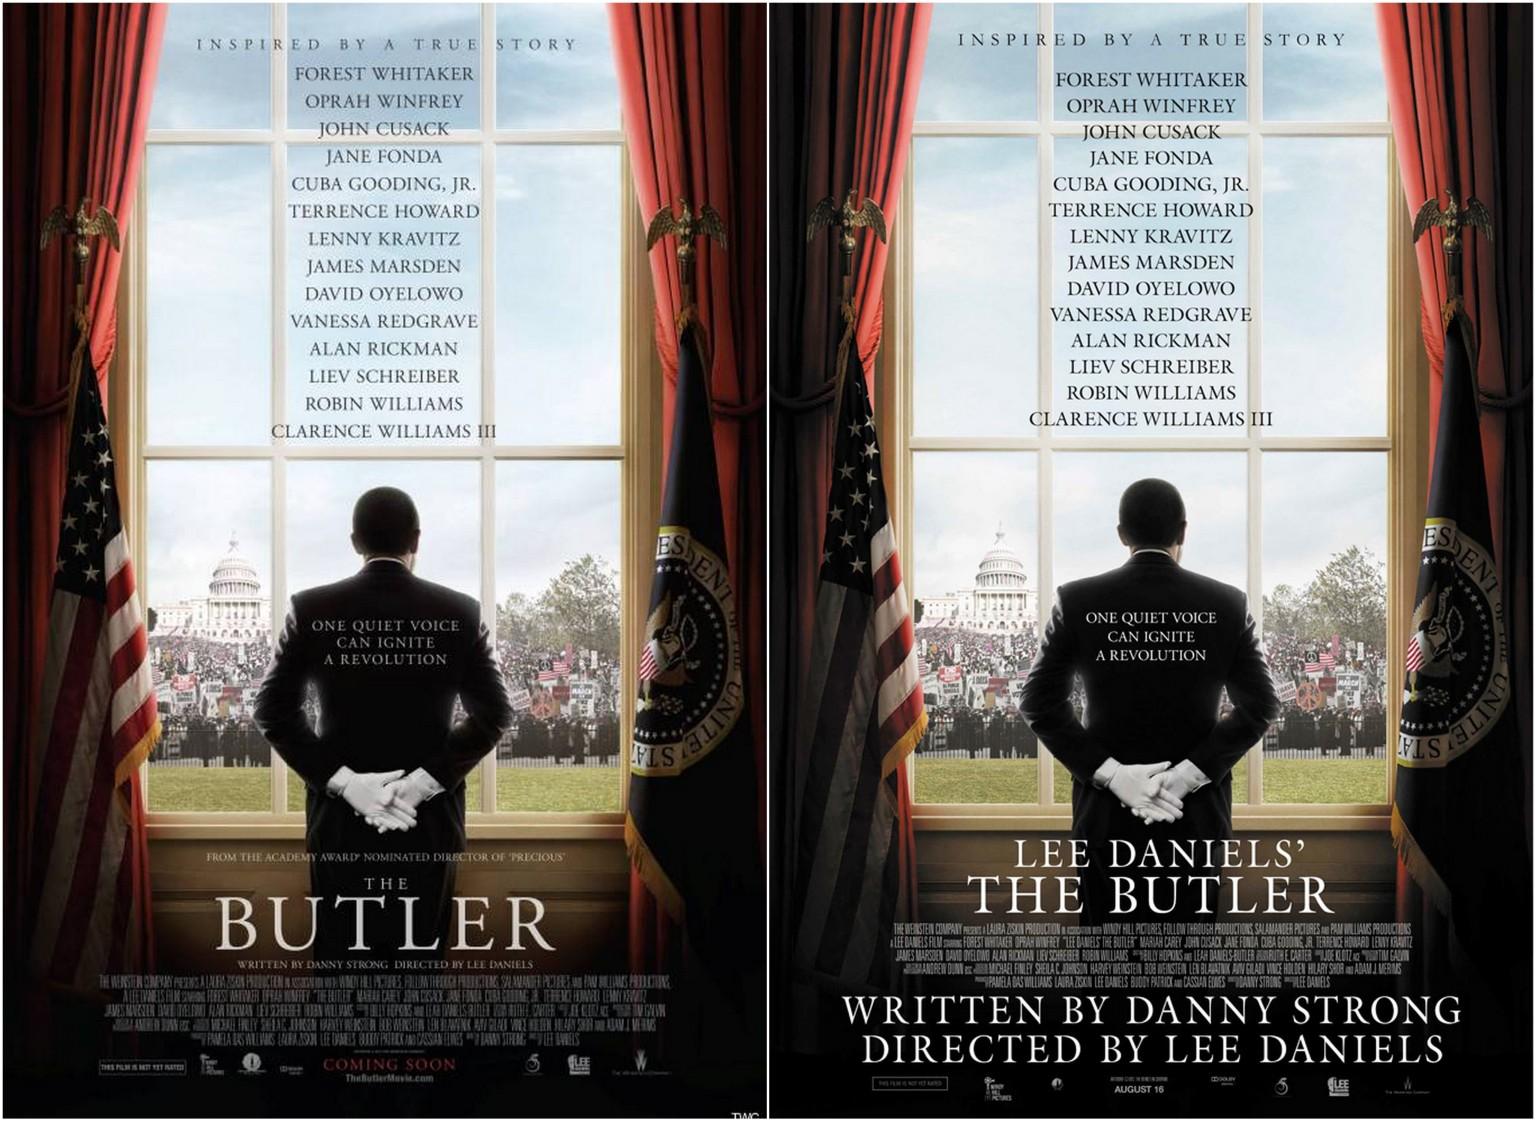 The Butler Movie Quotes. QuotesGram